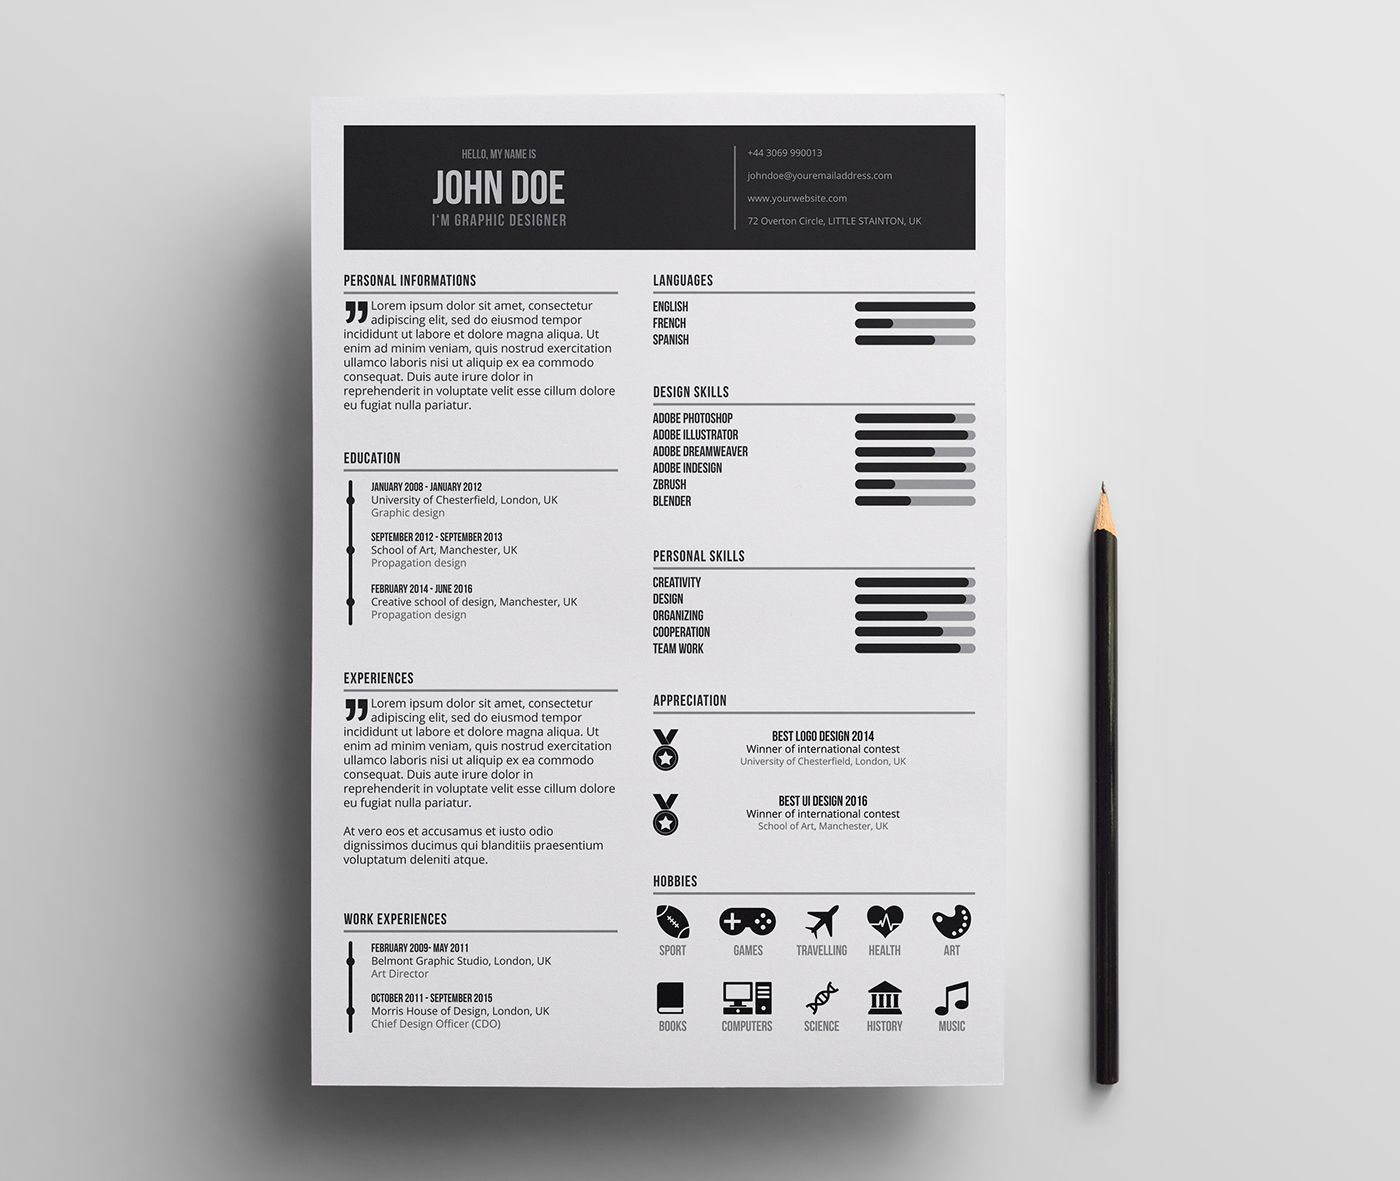 free minimal resume template    minimalist    simple    clean    freebie    graphic design    ideas